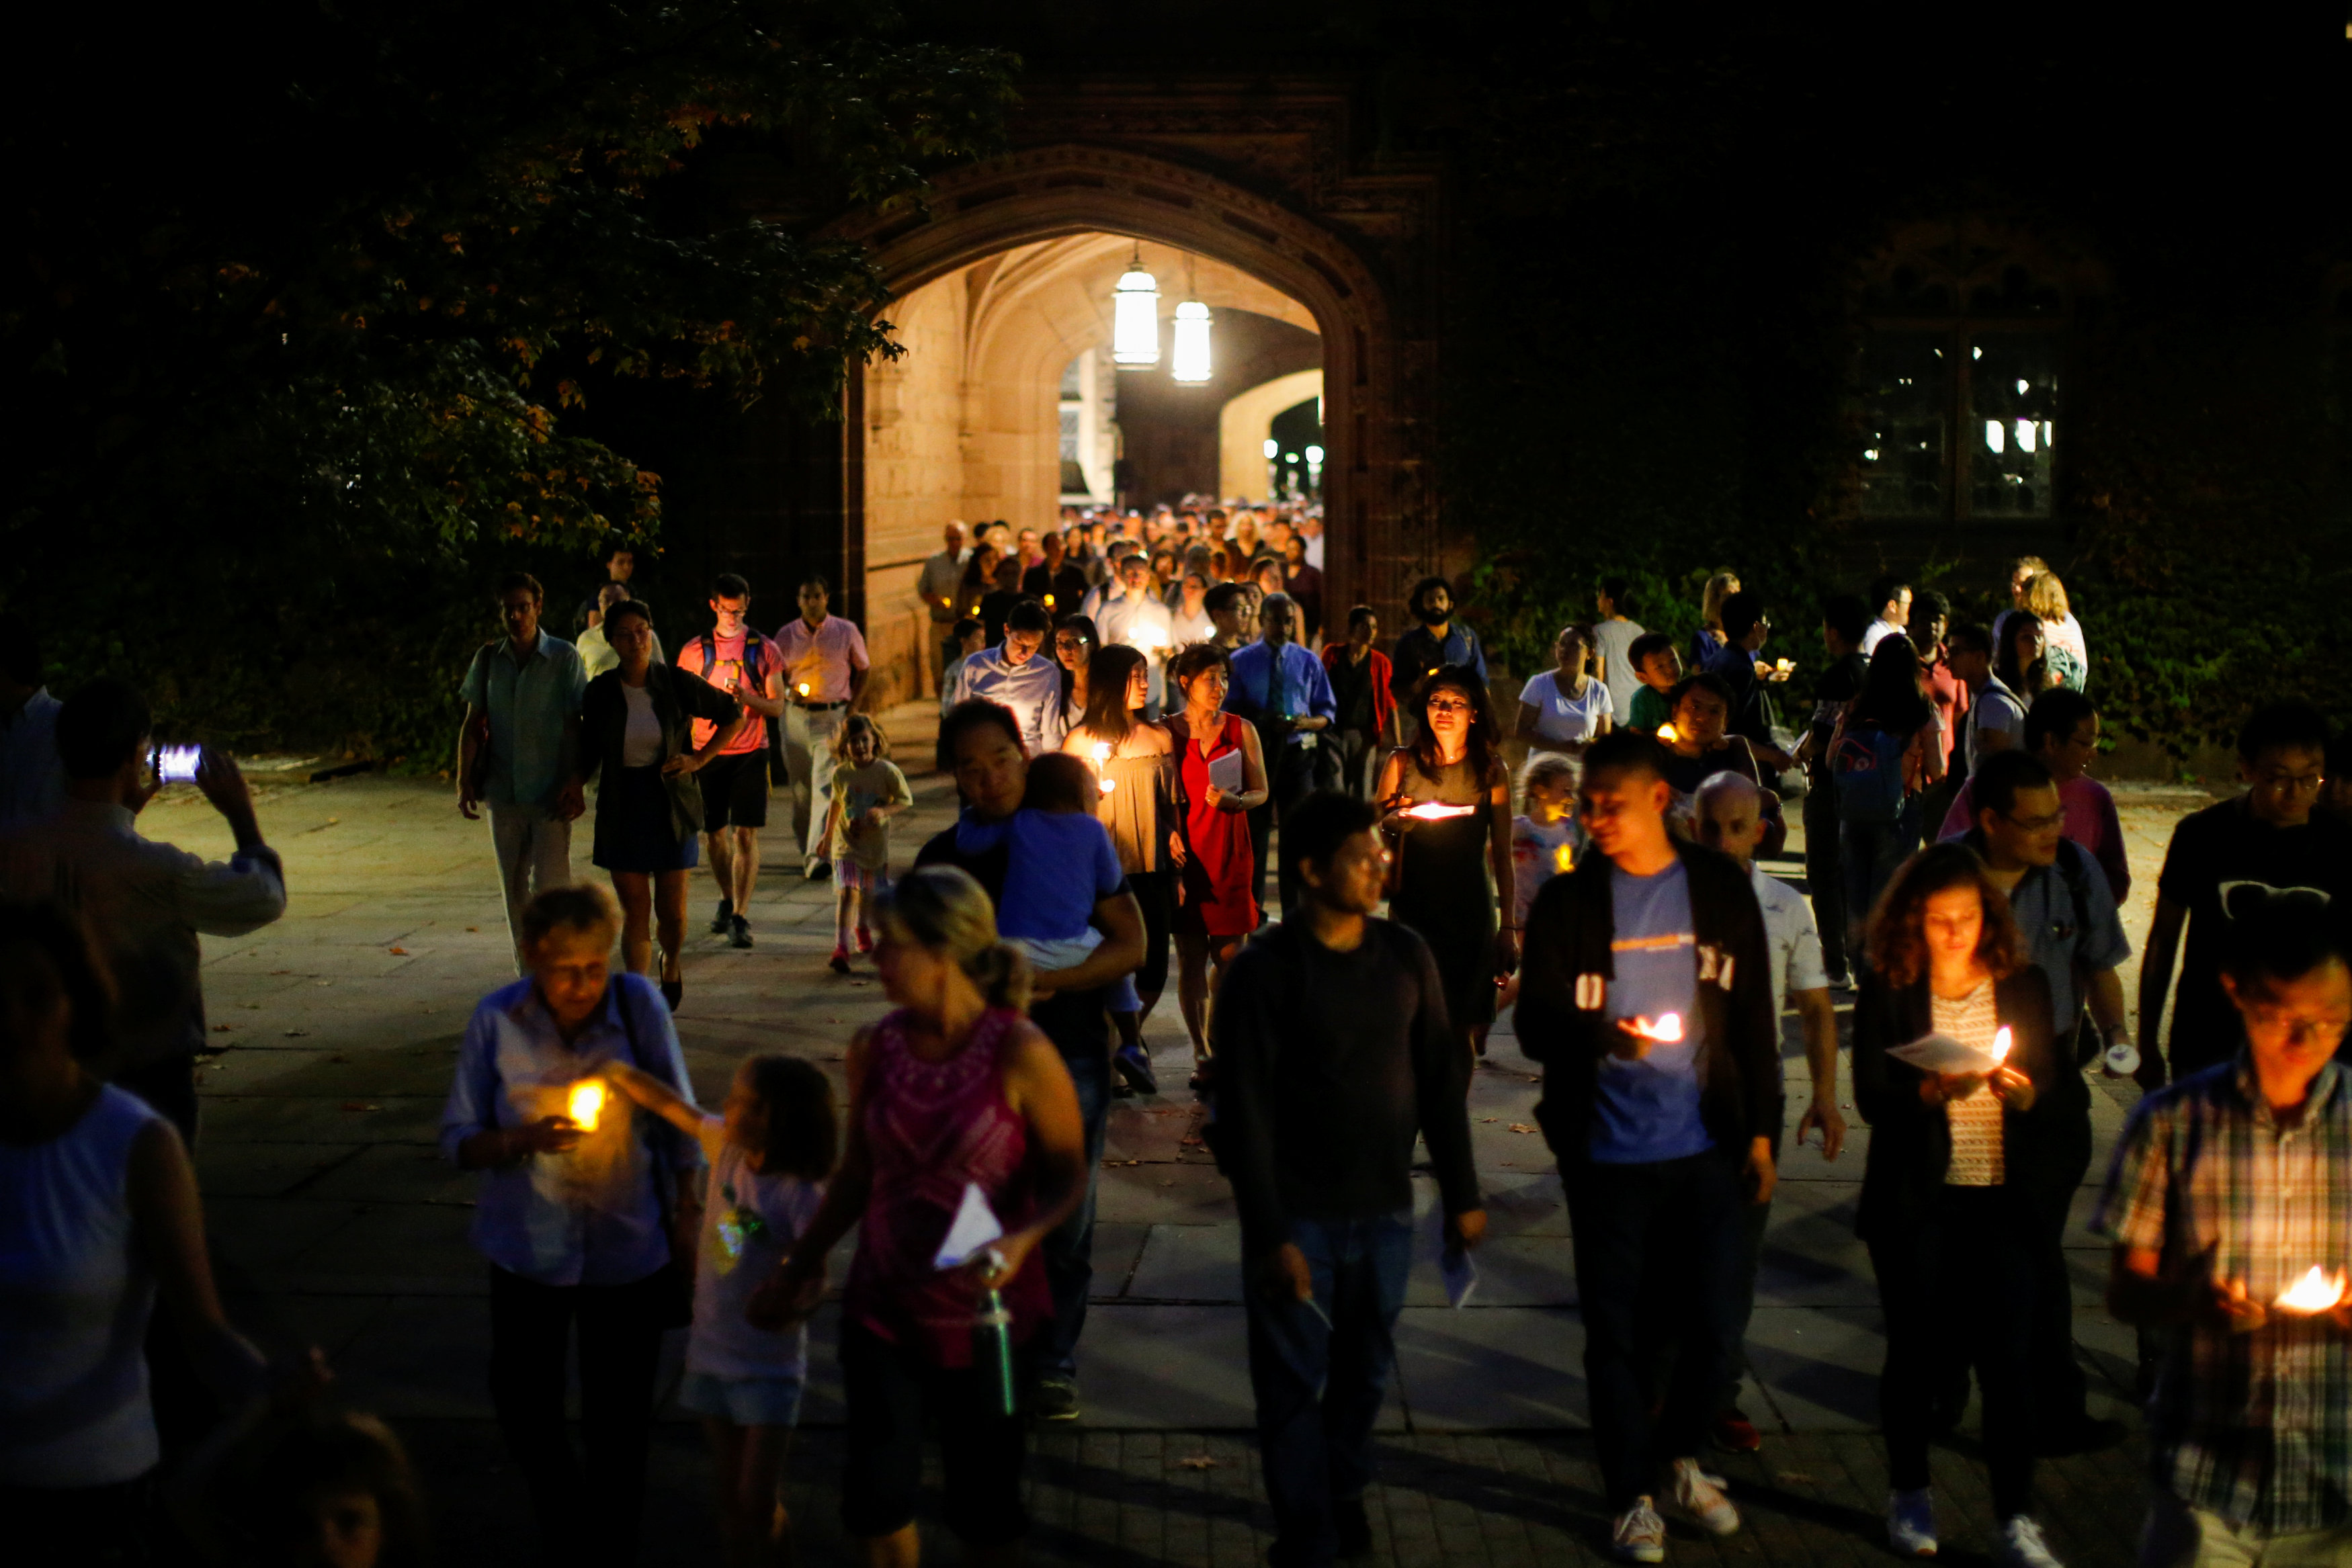 People attend a vigil for Xiyue Wang at Princeton University in Princeton, New Jersey on Sept. 15, 2017. (REUTERS/Eduardo Munoz)